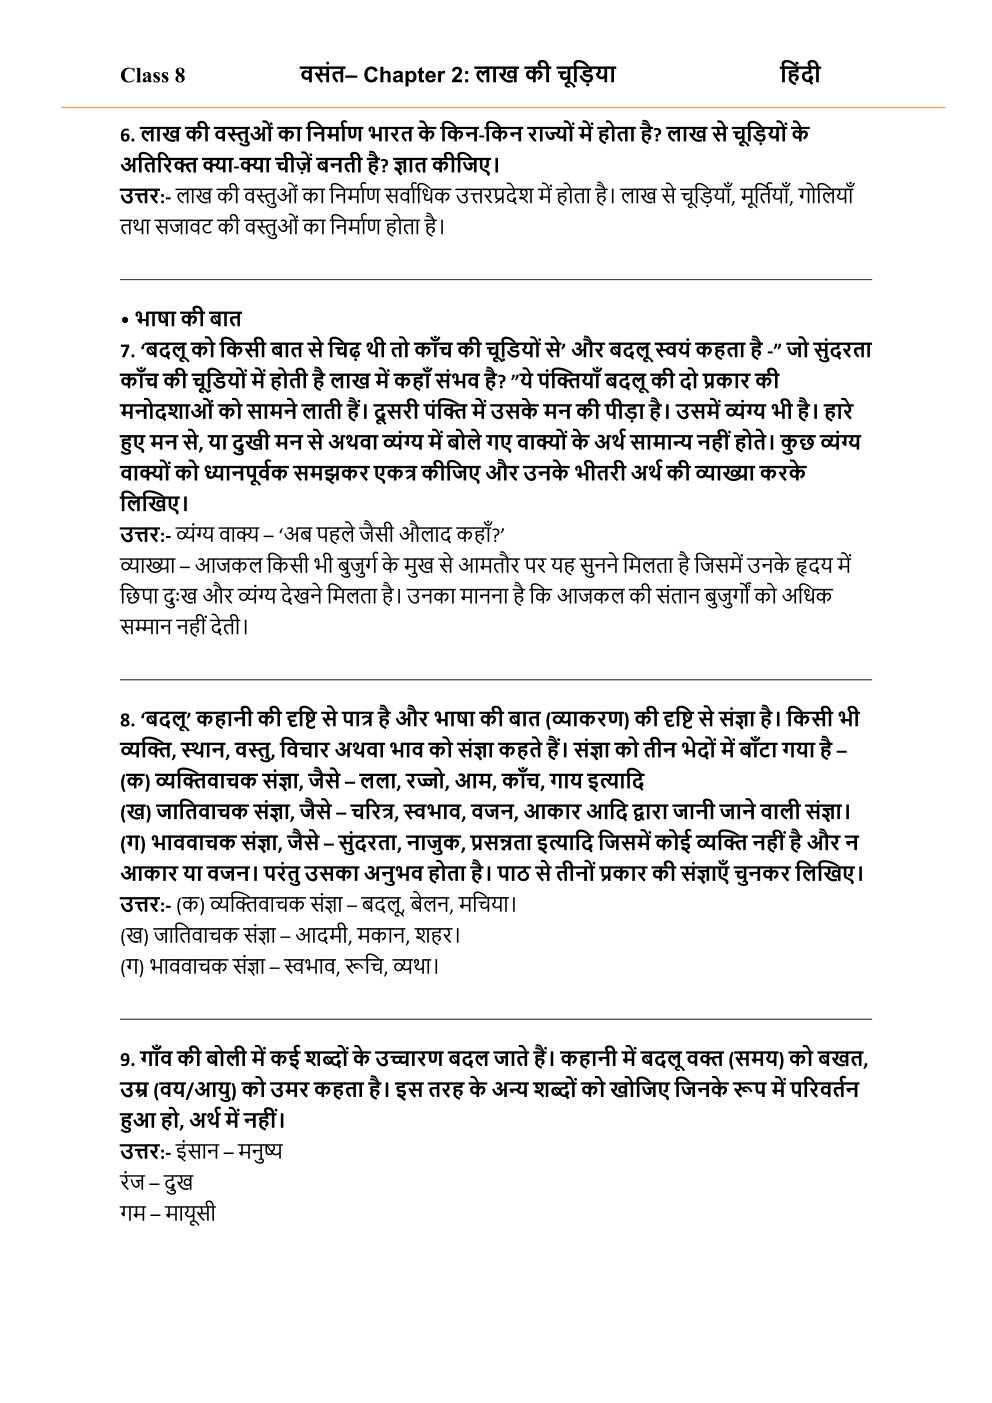 NCERT Solutions For Class 8 Hindi Vasant Chapter 2